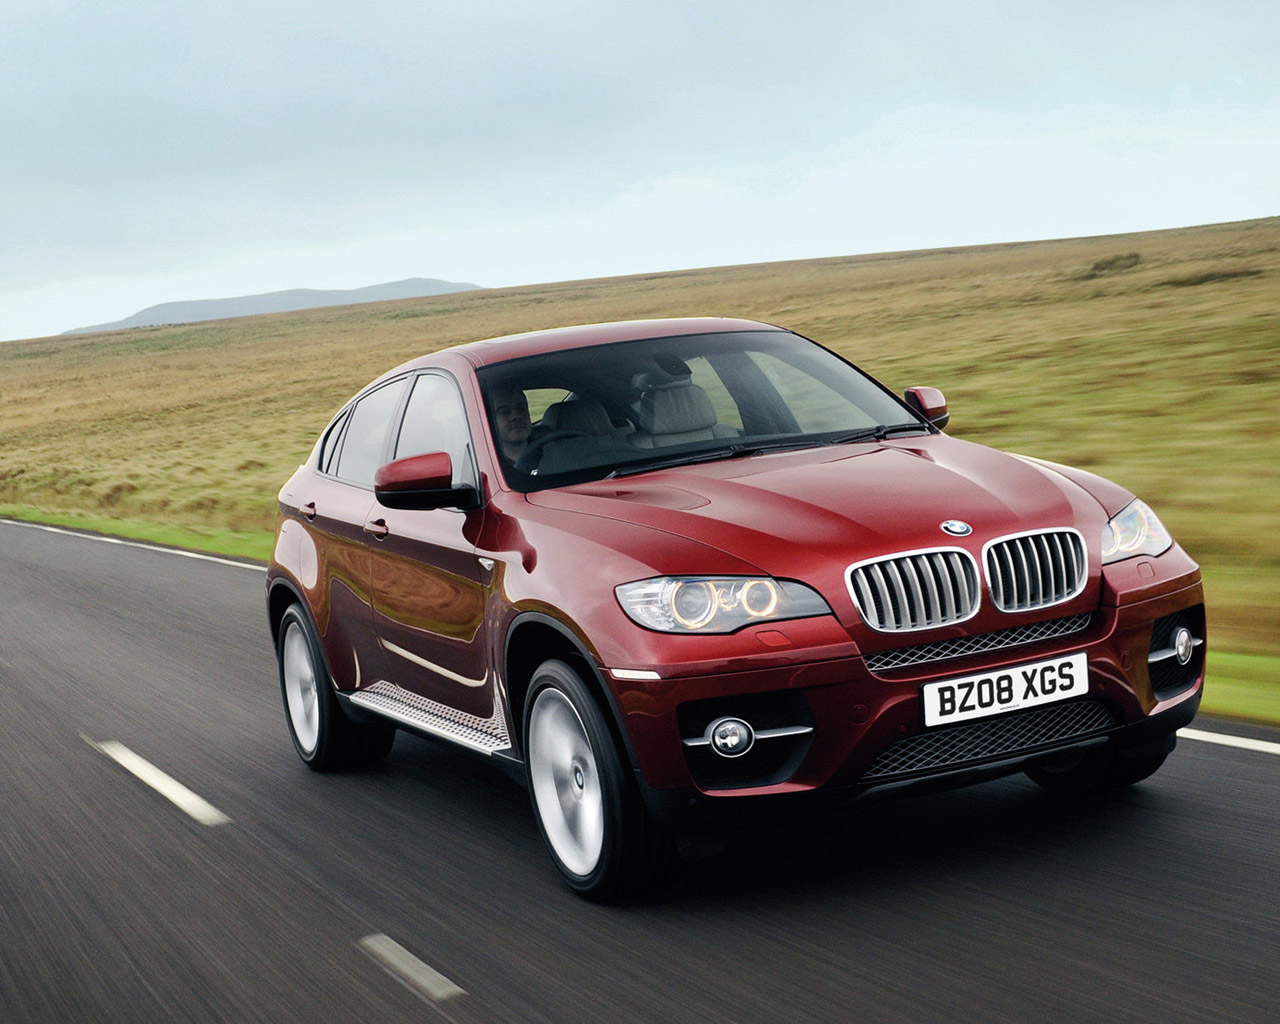 BMW X6 Wallpaper For Iphone Free